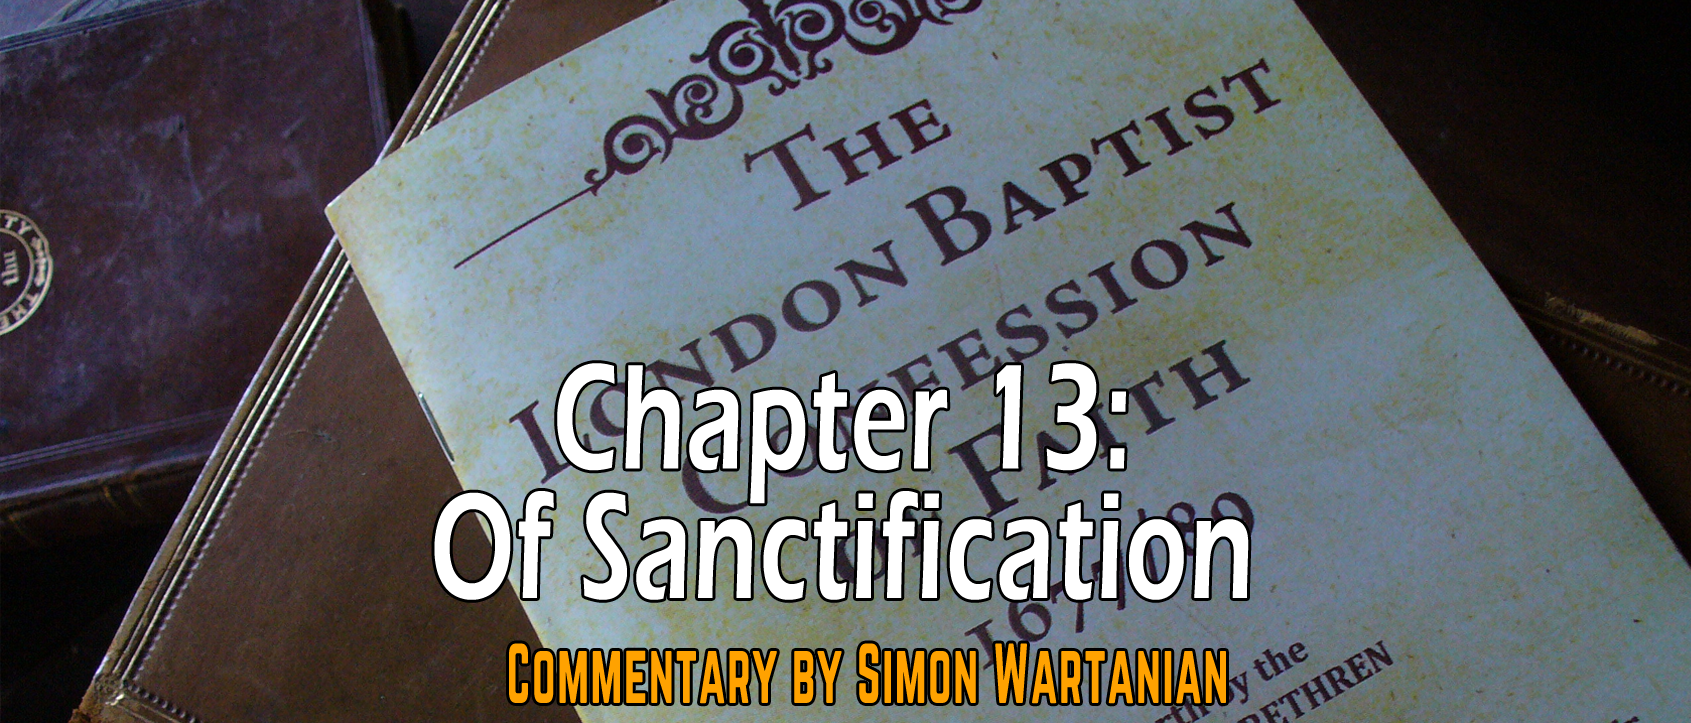 1689 Baptist Confession Chapter 13: Of Sanctification - Commentary